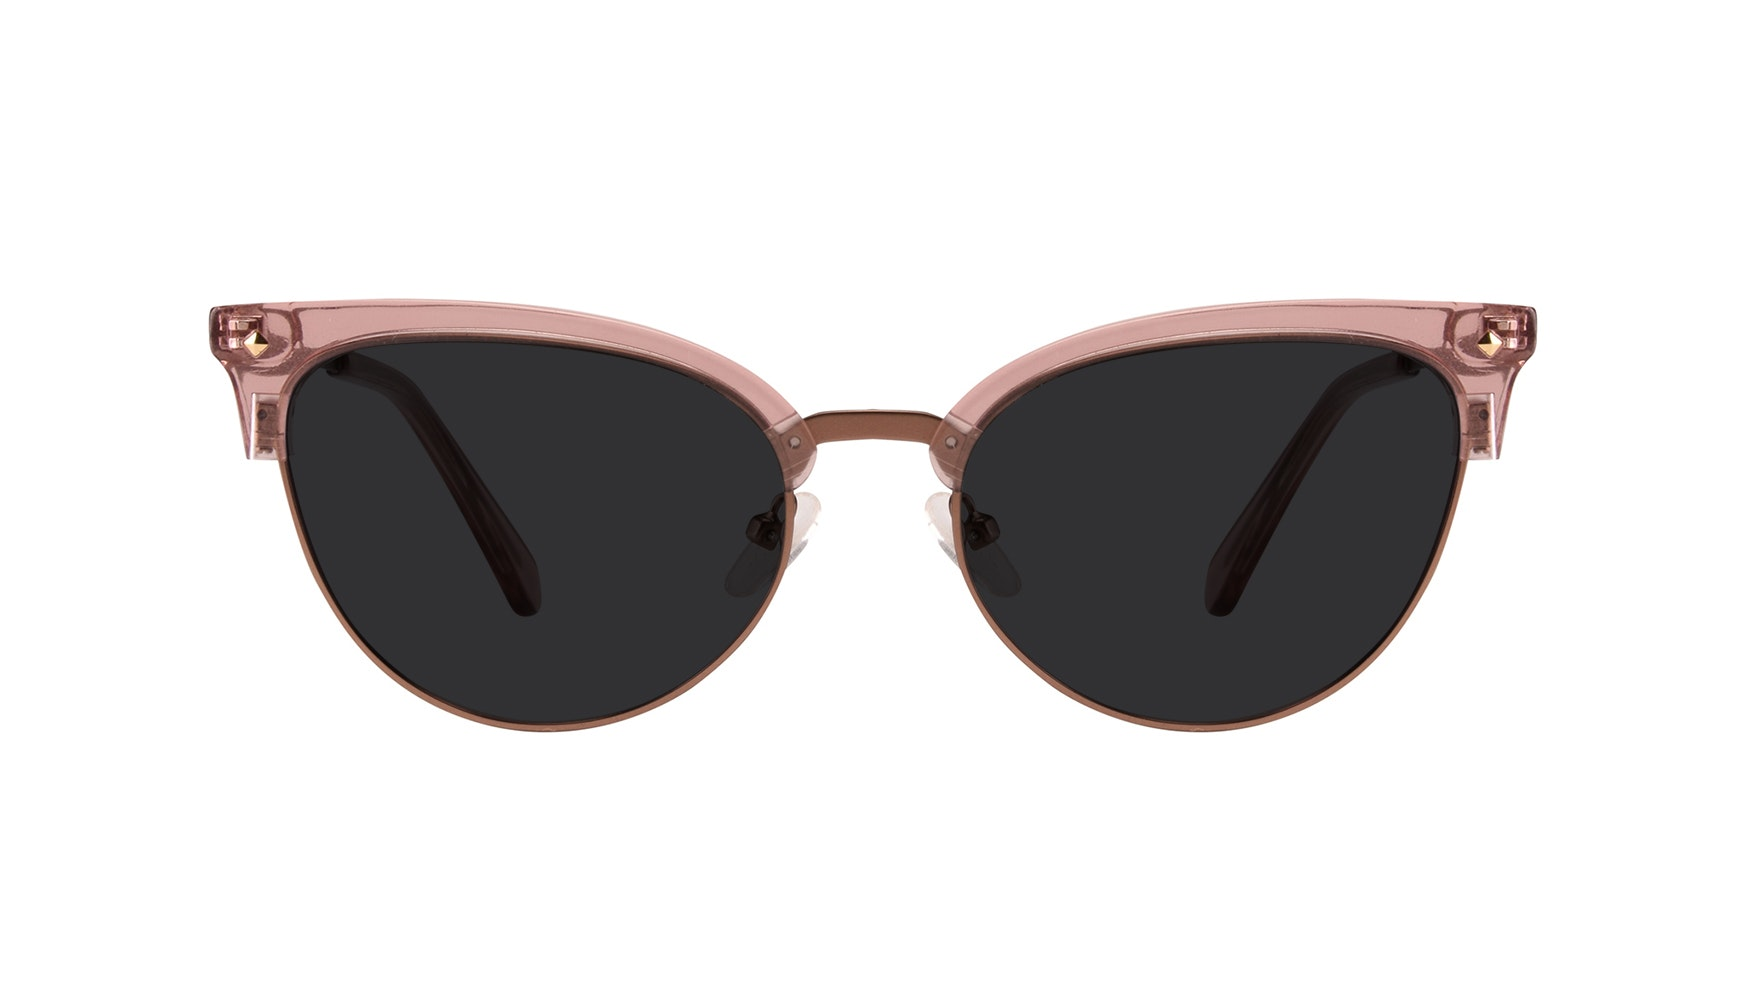 Affordable Fashion Glasses Cat Eye Daring Cateye Sunglasses Women Moon Rose